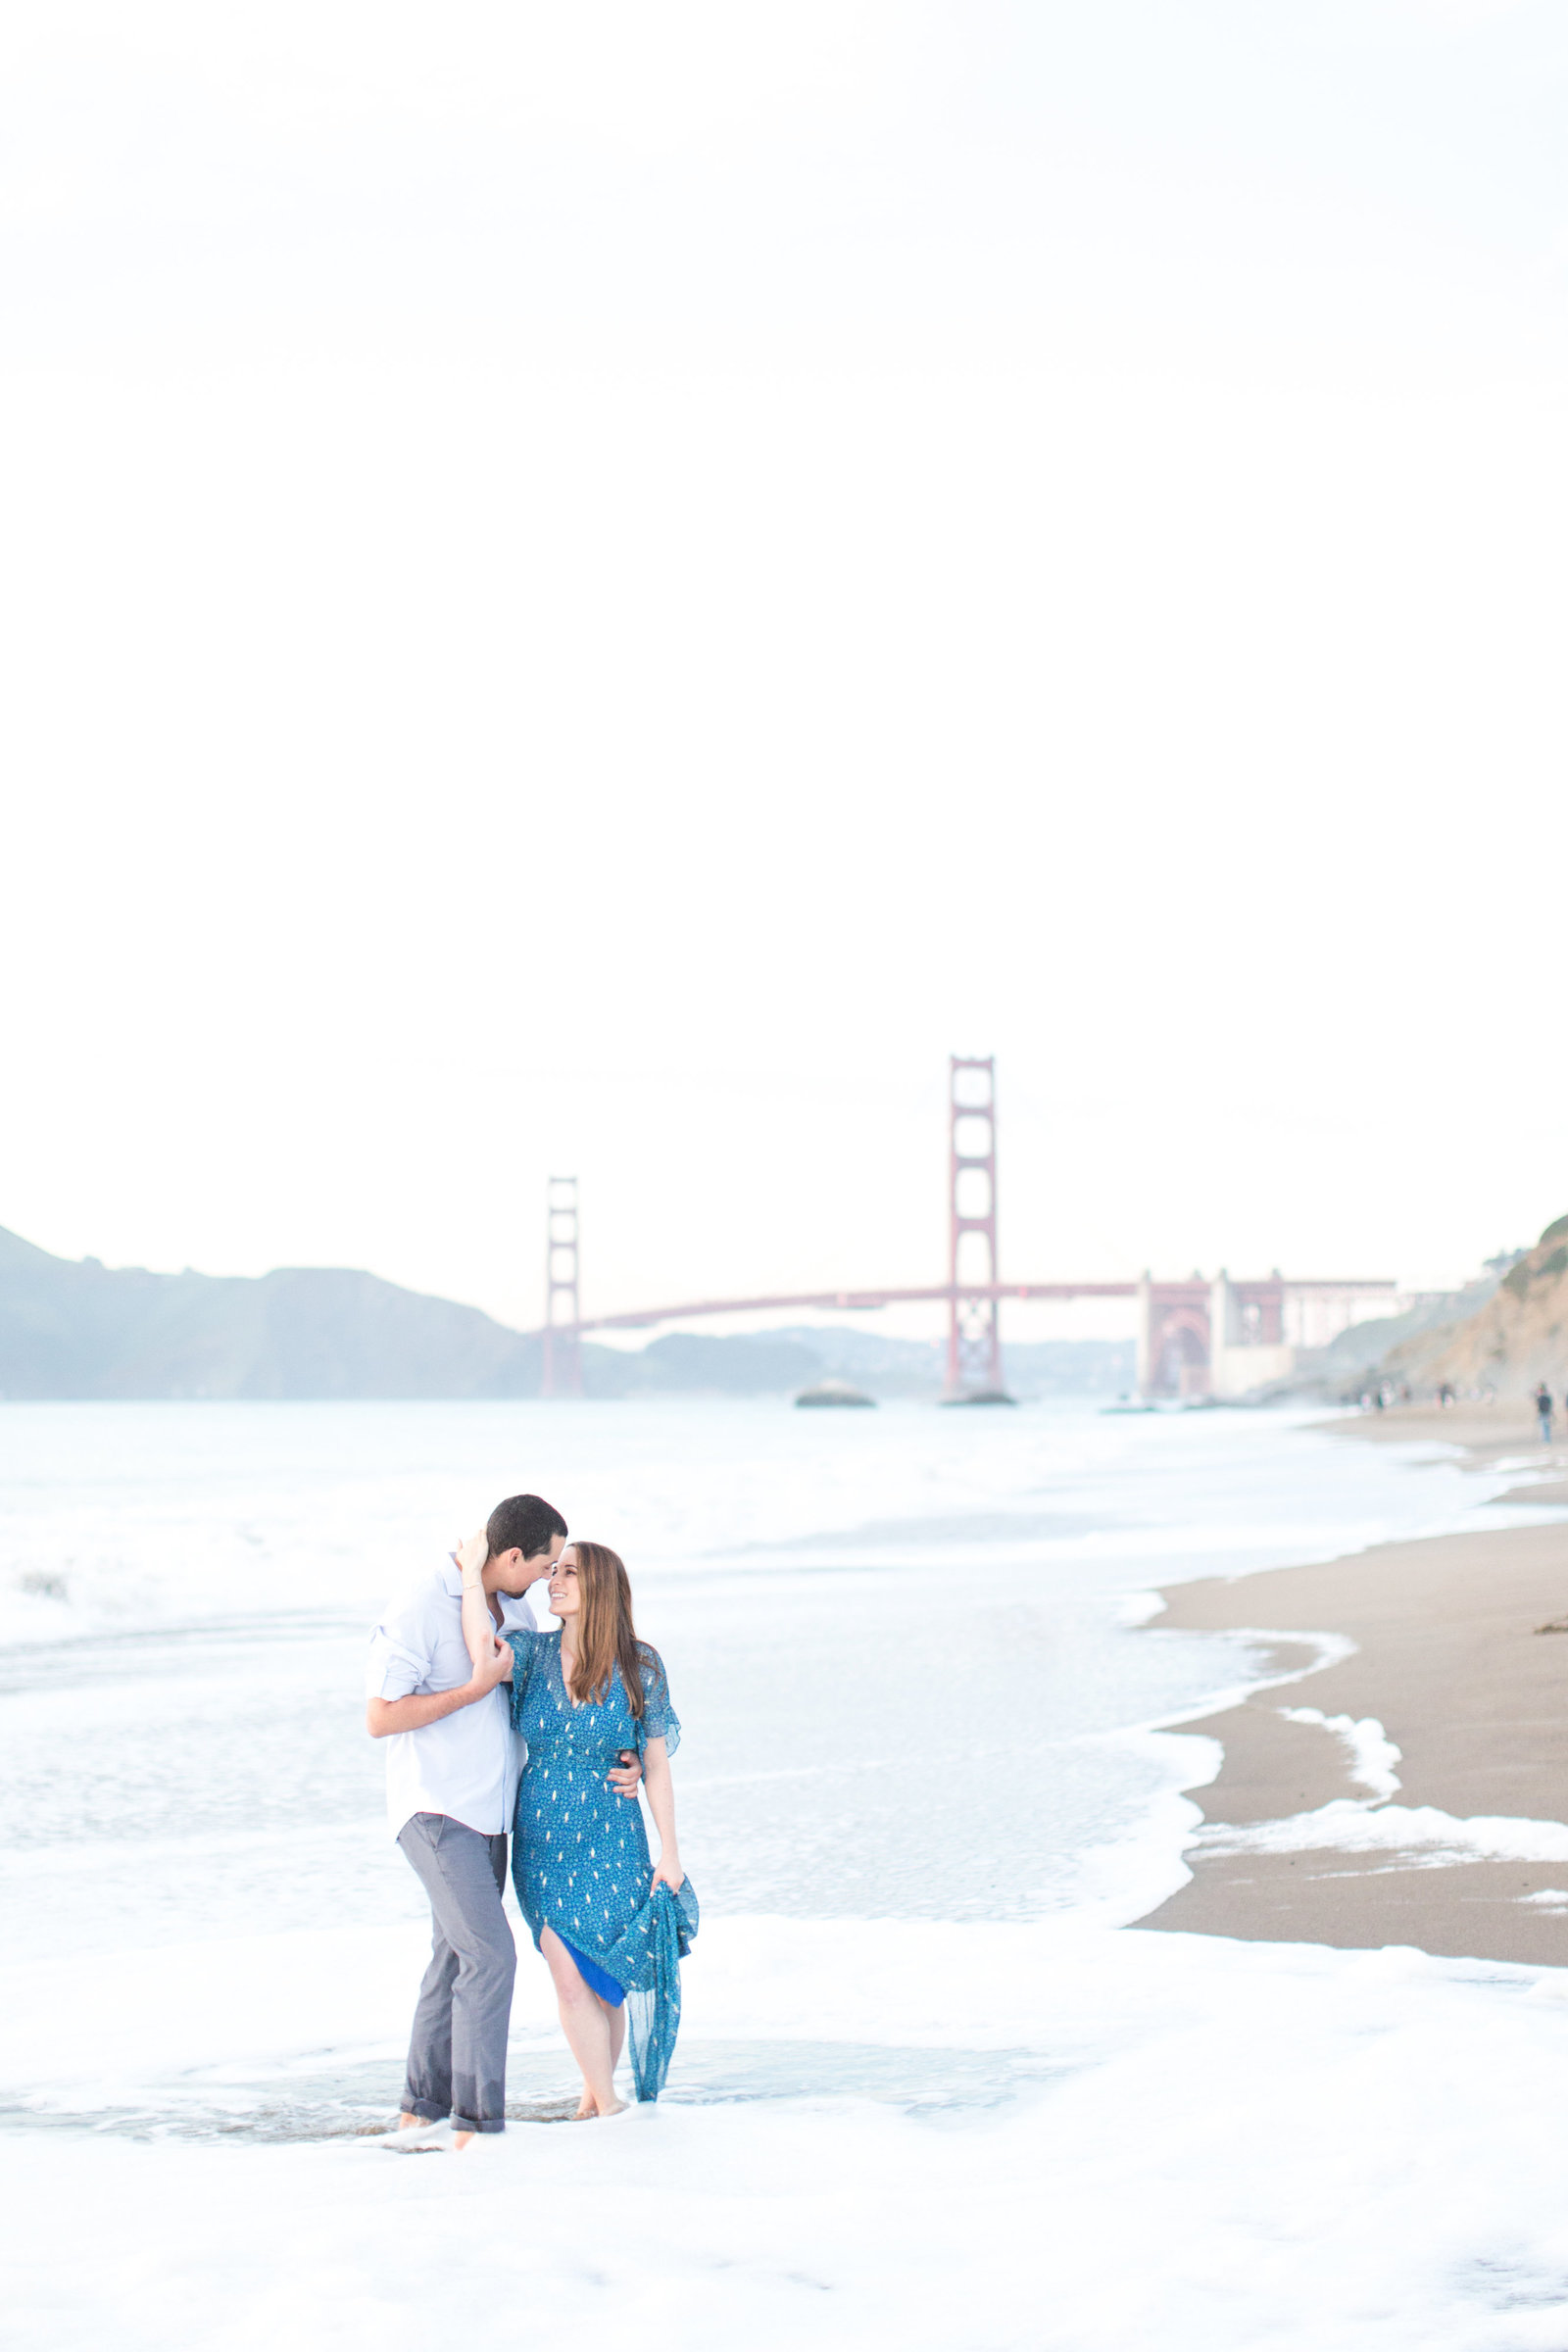 Carly Carlos Engagement-Full Gallery-0170